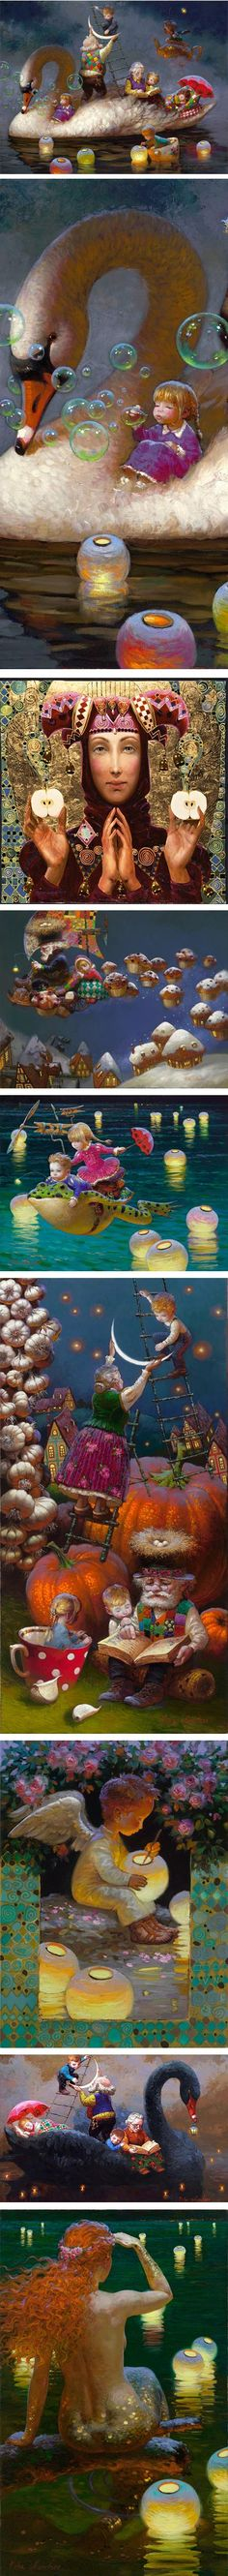 Victor Nizovtsev Victor Nizovtsev was born in Russia and studied at the Ilia Repin Collge for Art in Chisinau, Moldavia and the Vera Muhina University for Industrial Arts in St. Petersburg. He now lives in the U.S. in Maryland.  His paintings have some of the narrative character of Golden Age children's book illustration, and draw on influences from Art Nouveau,